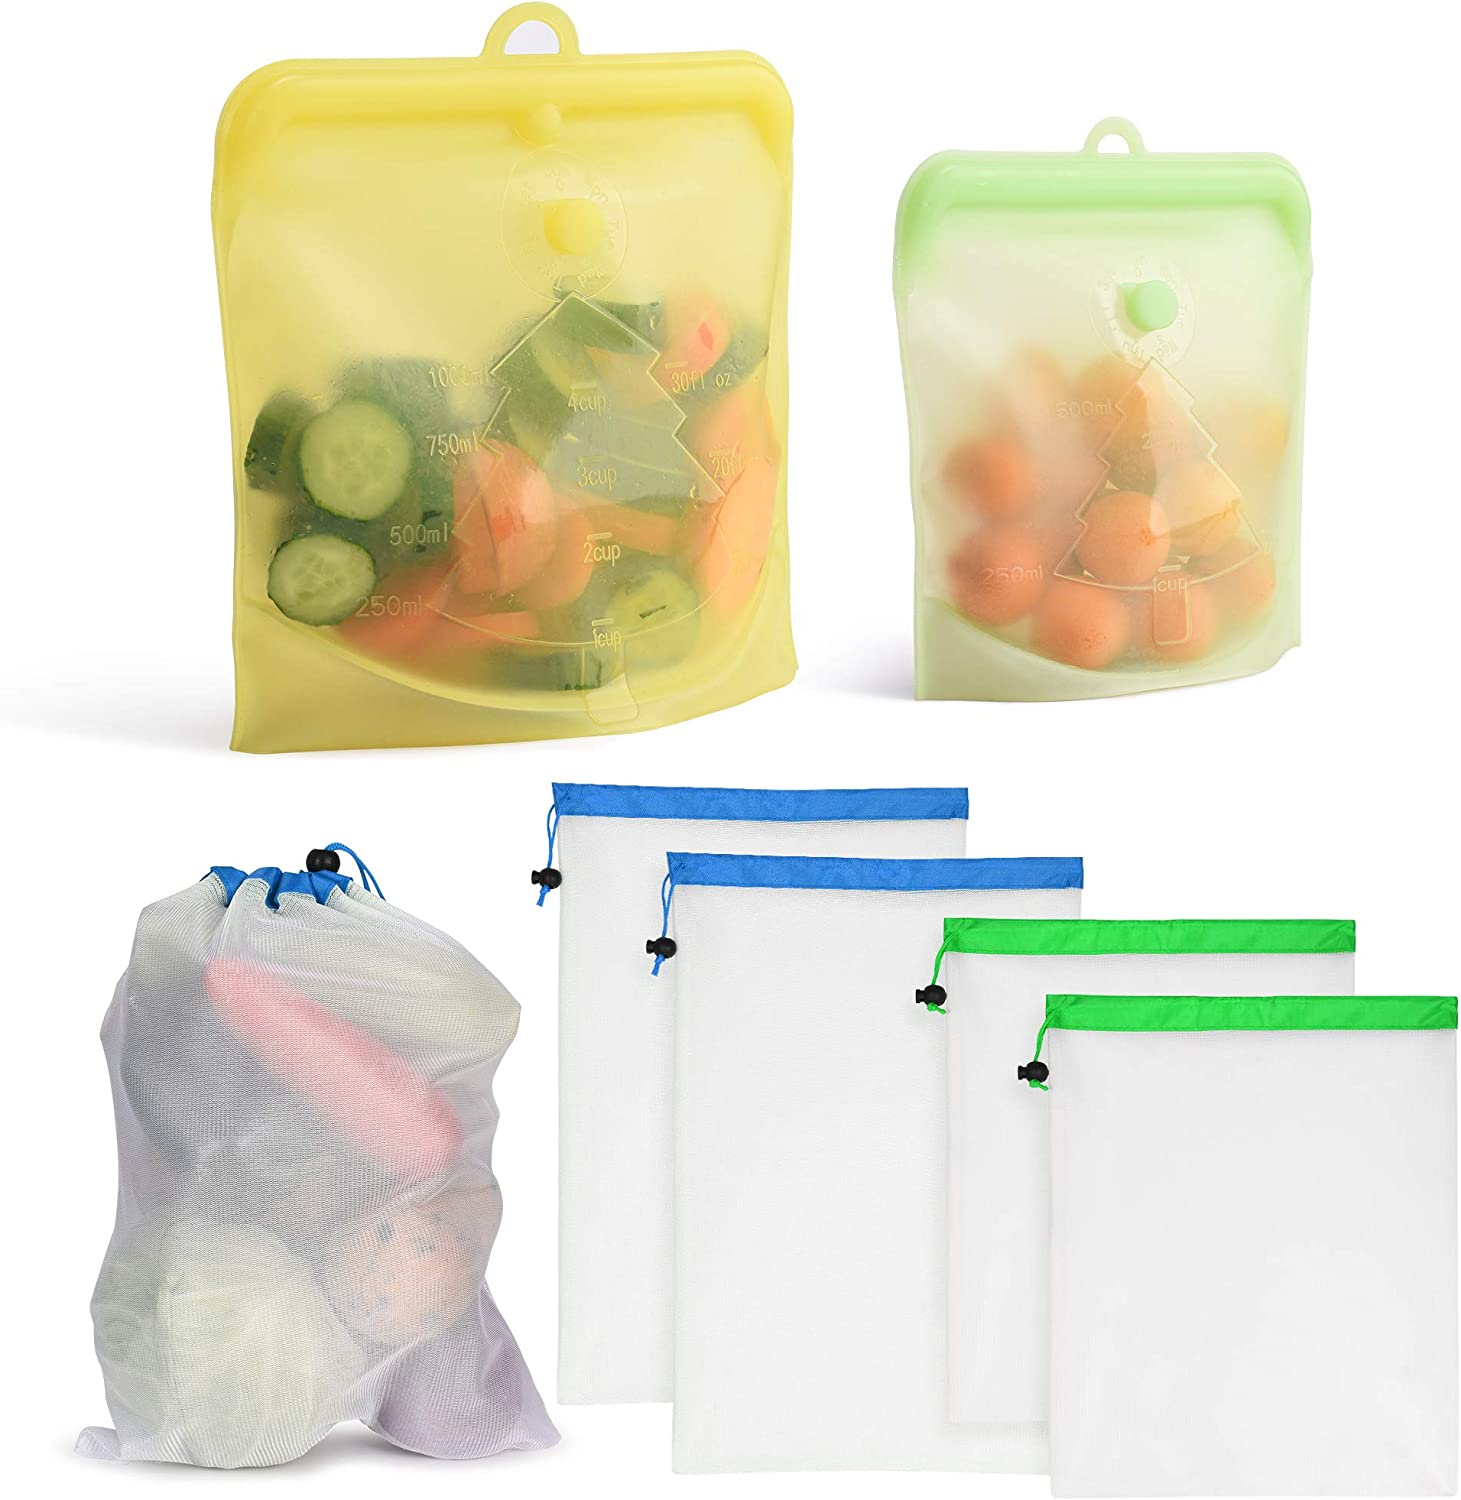 Reusable sandwich bag food grade bucket silicone lunch boxes food storage solutions bag nut milk bag vegetable brush oxygen absorbers for food storage stand up freezer reusable bags freezer organic frozen vegetables